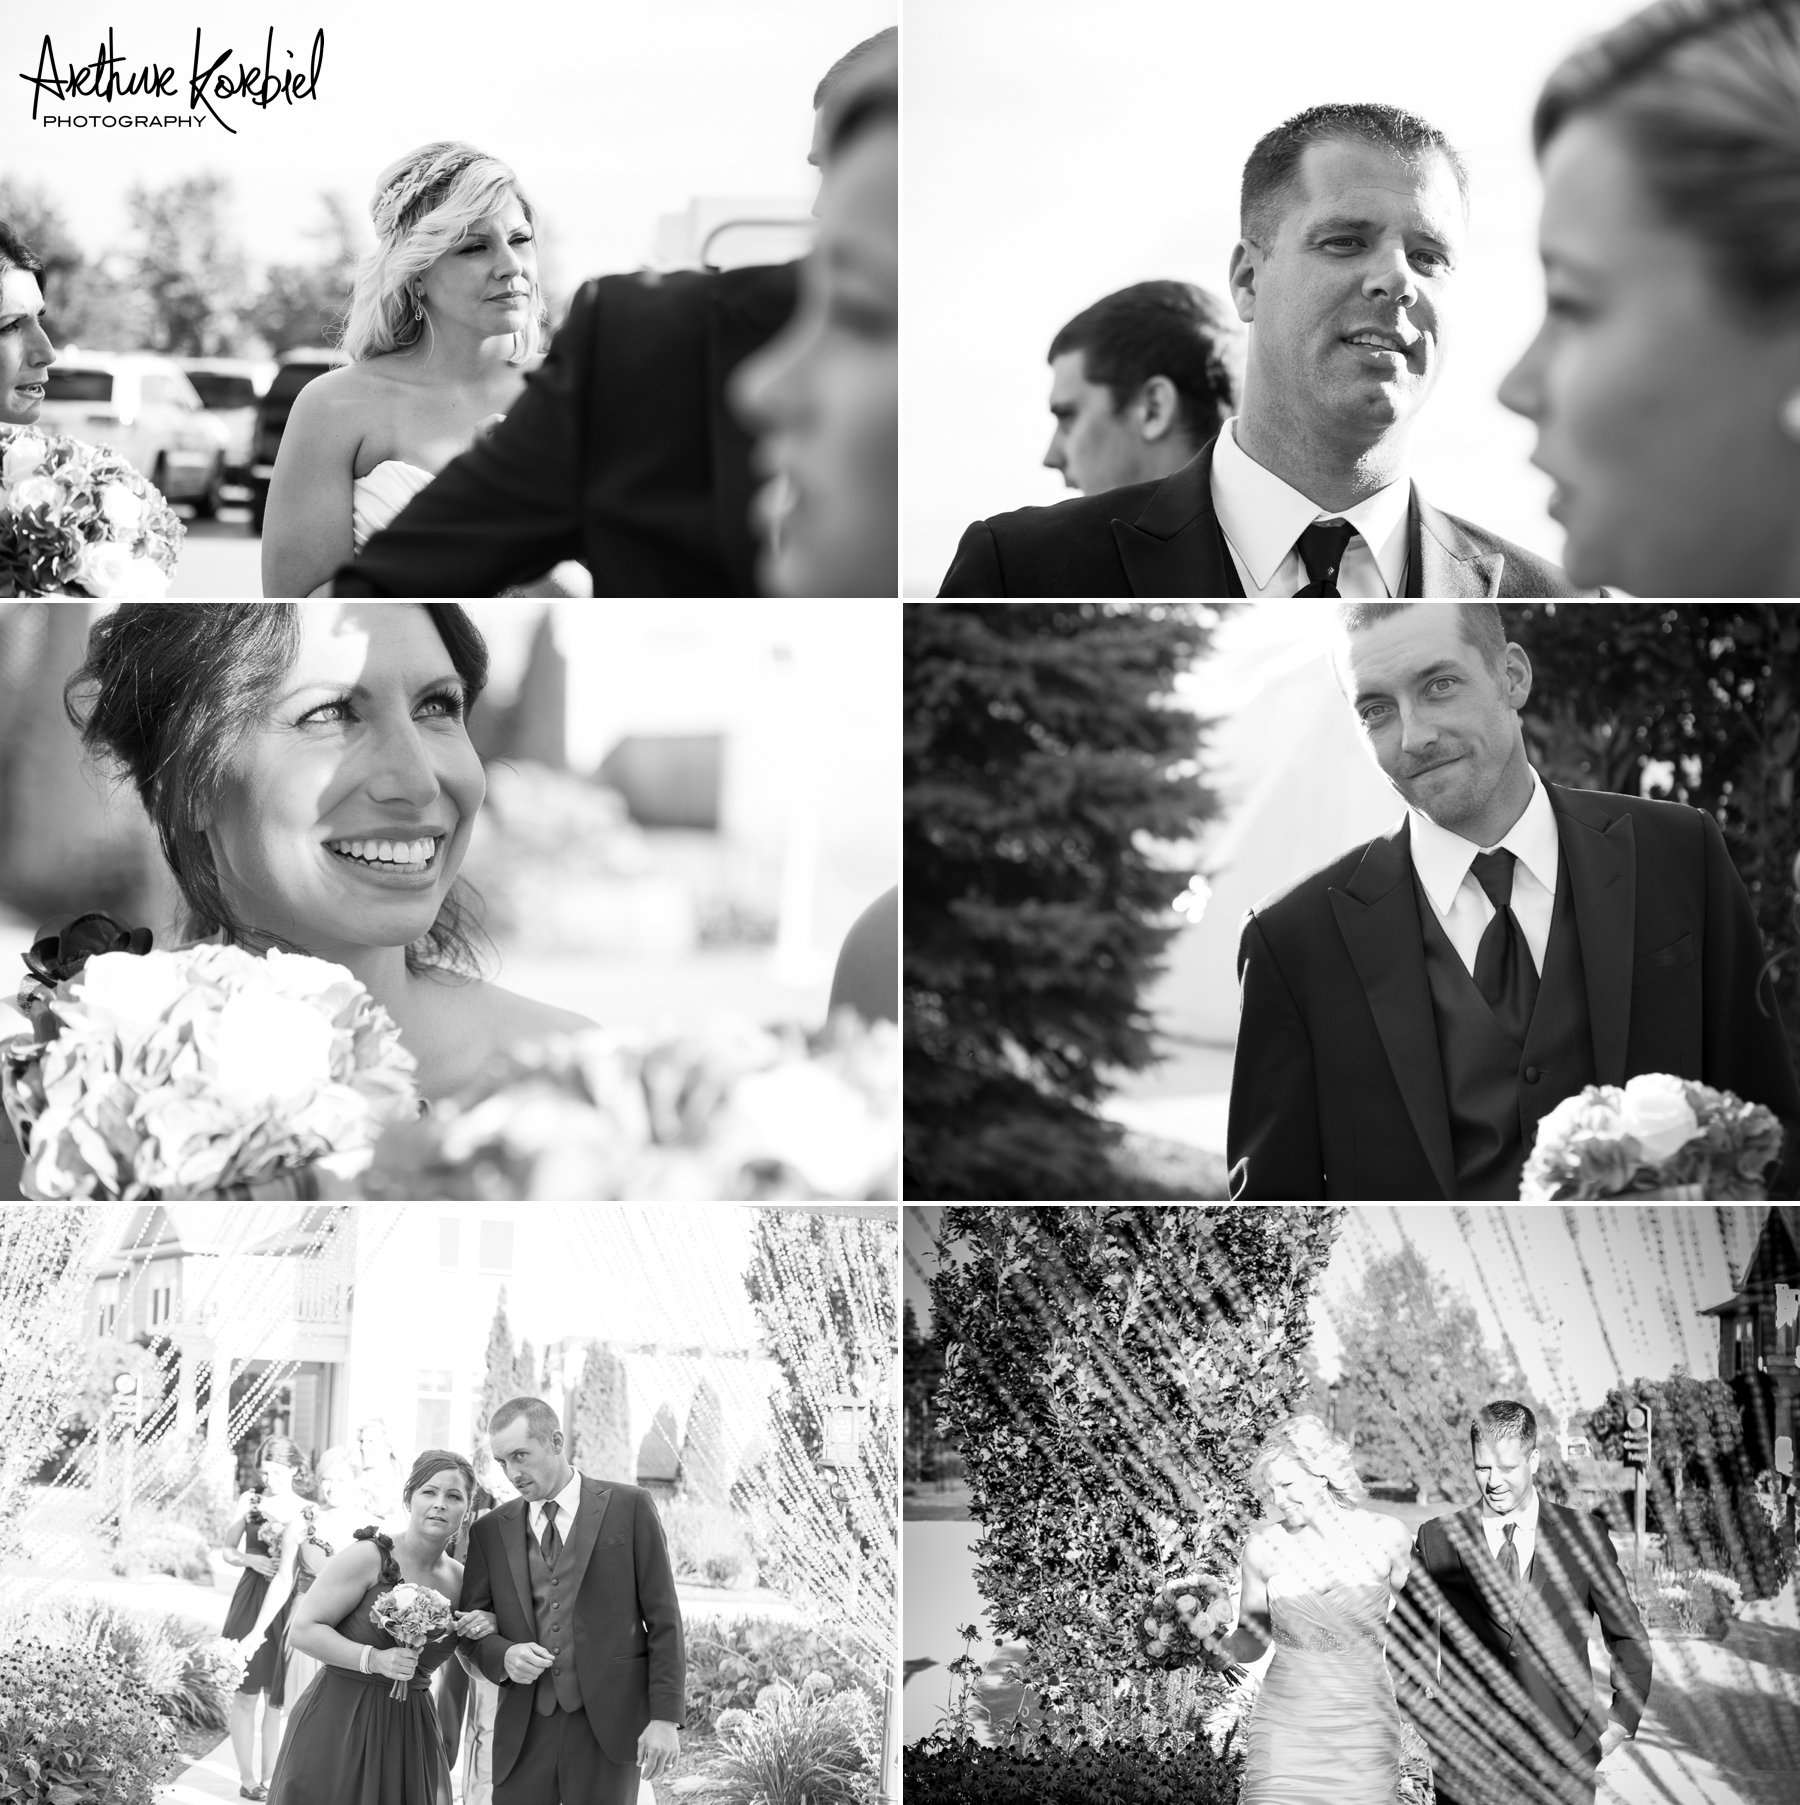 Arthur Korbiel Photography - London Wedding Photographer - Stone Willow Inn - St Marys & Stratford_006.jpg